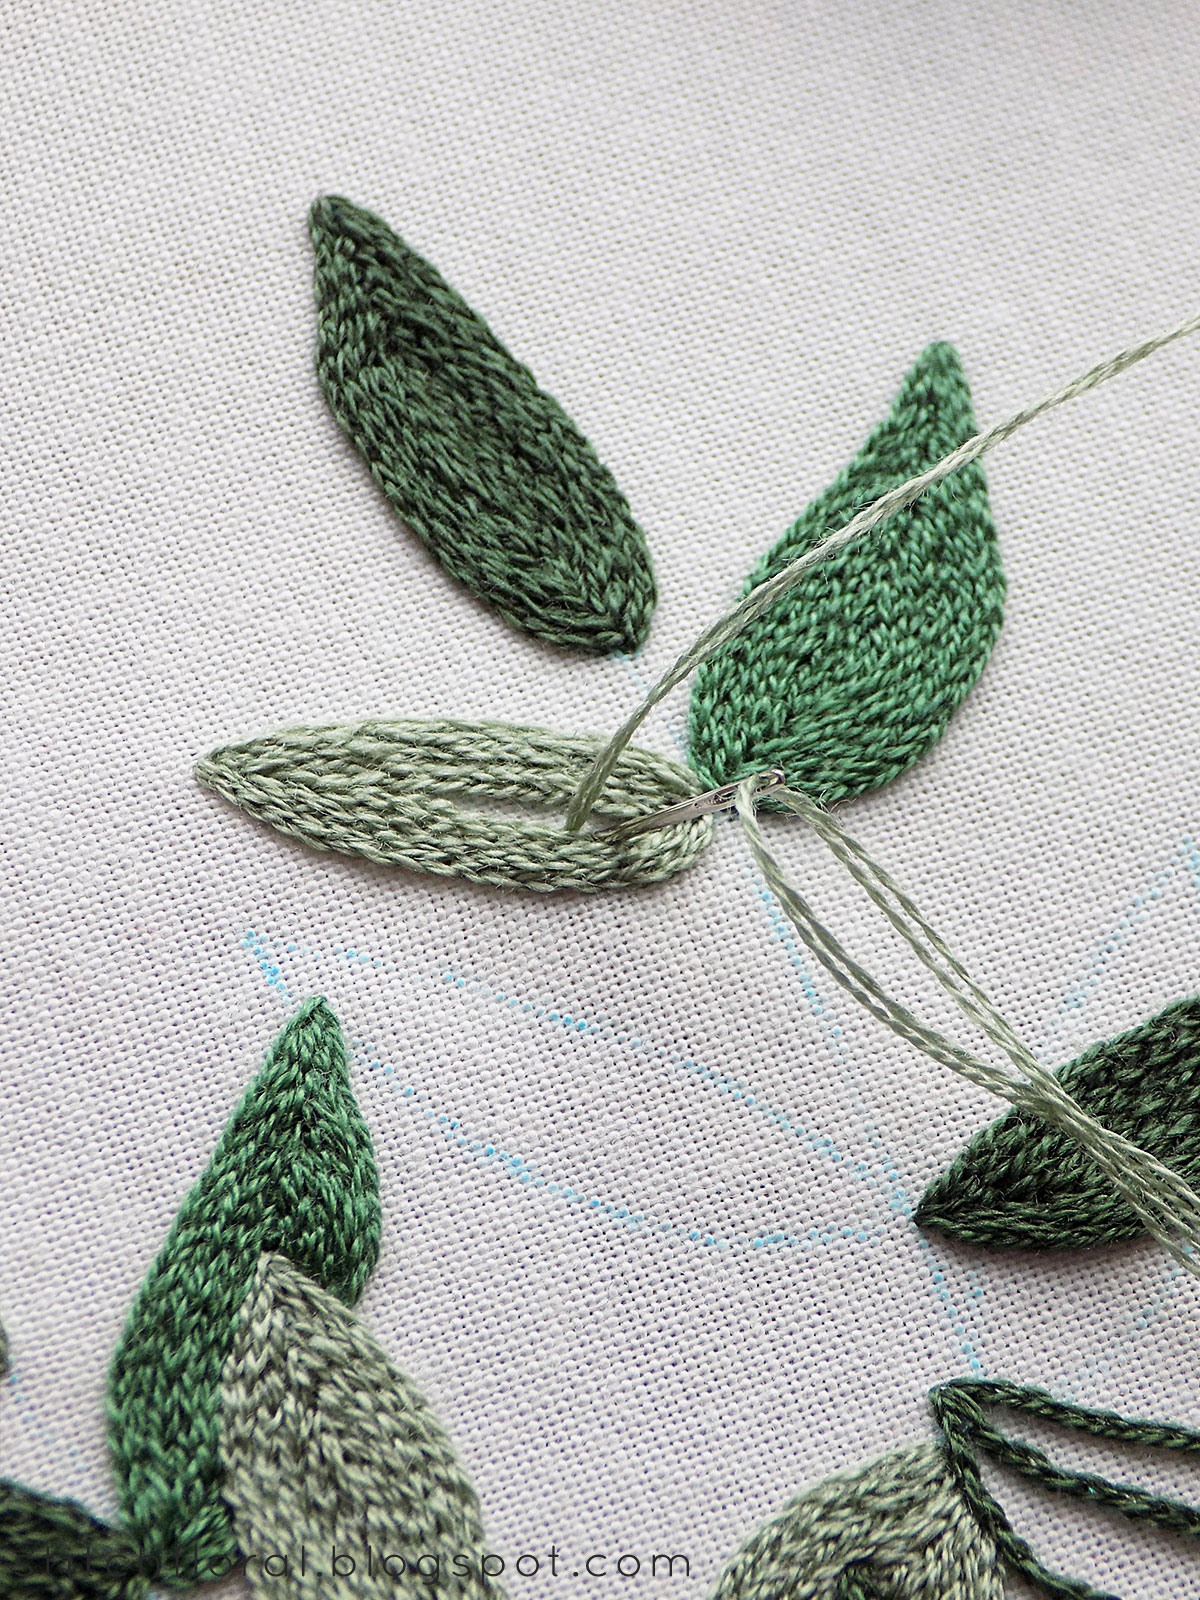 Hand Embroidery Stitches : embroidery, stitches, Basic, Stitches, Embroidery, Stitch, Floral